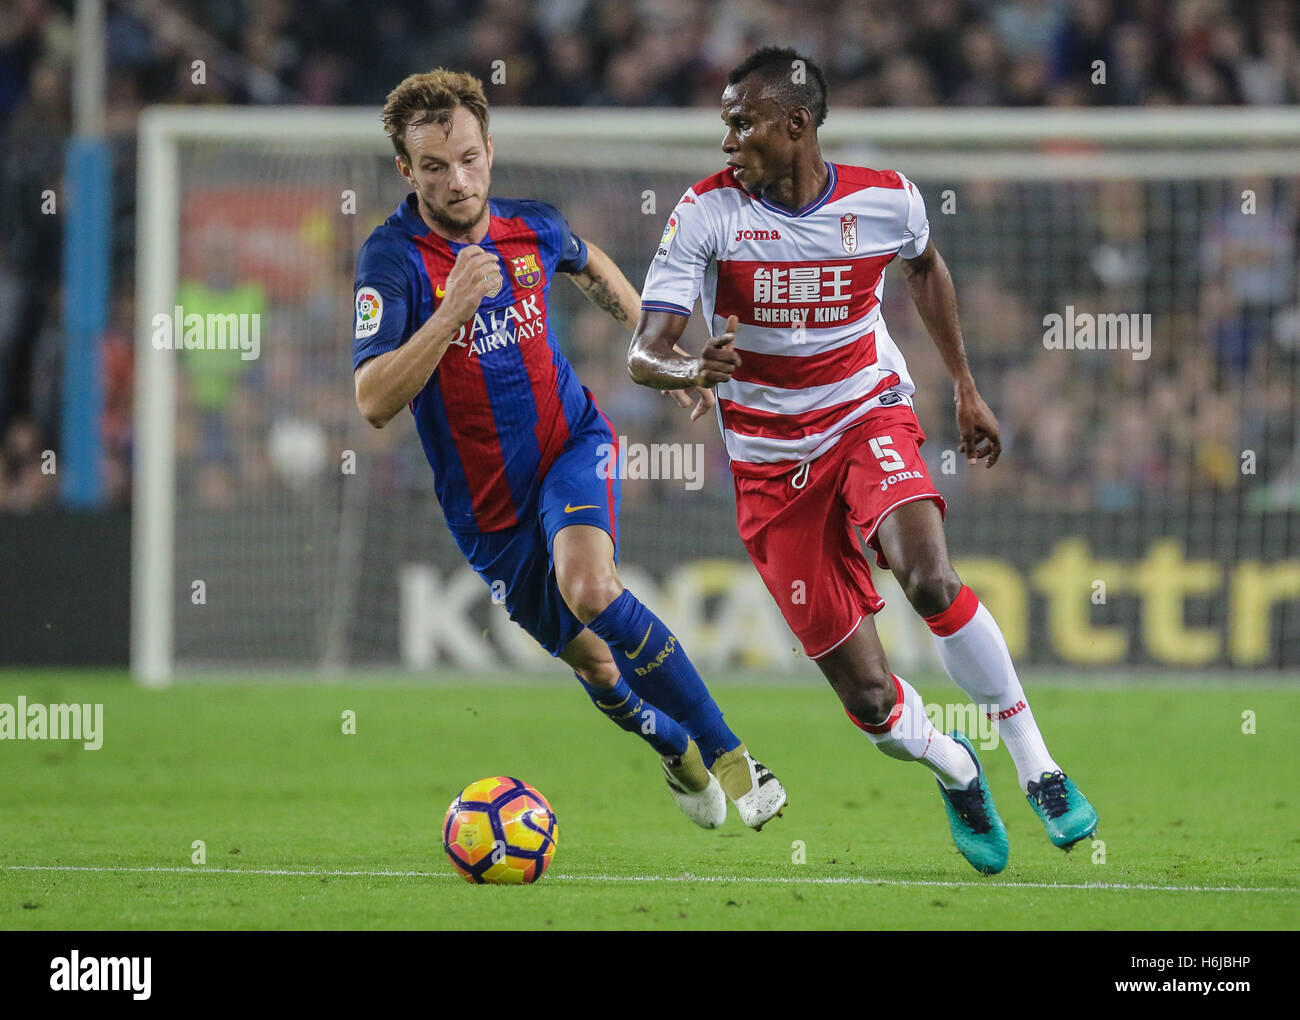 Uche has the ball against Rakitic. FC Barcelona defeated Granada 1-0 with goal scored by Rafinha at the 47th minute. - Stock Image